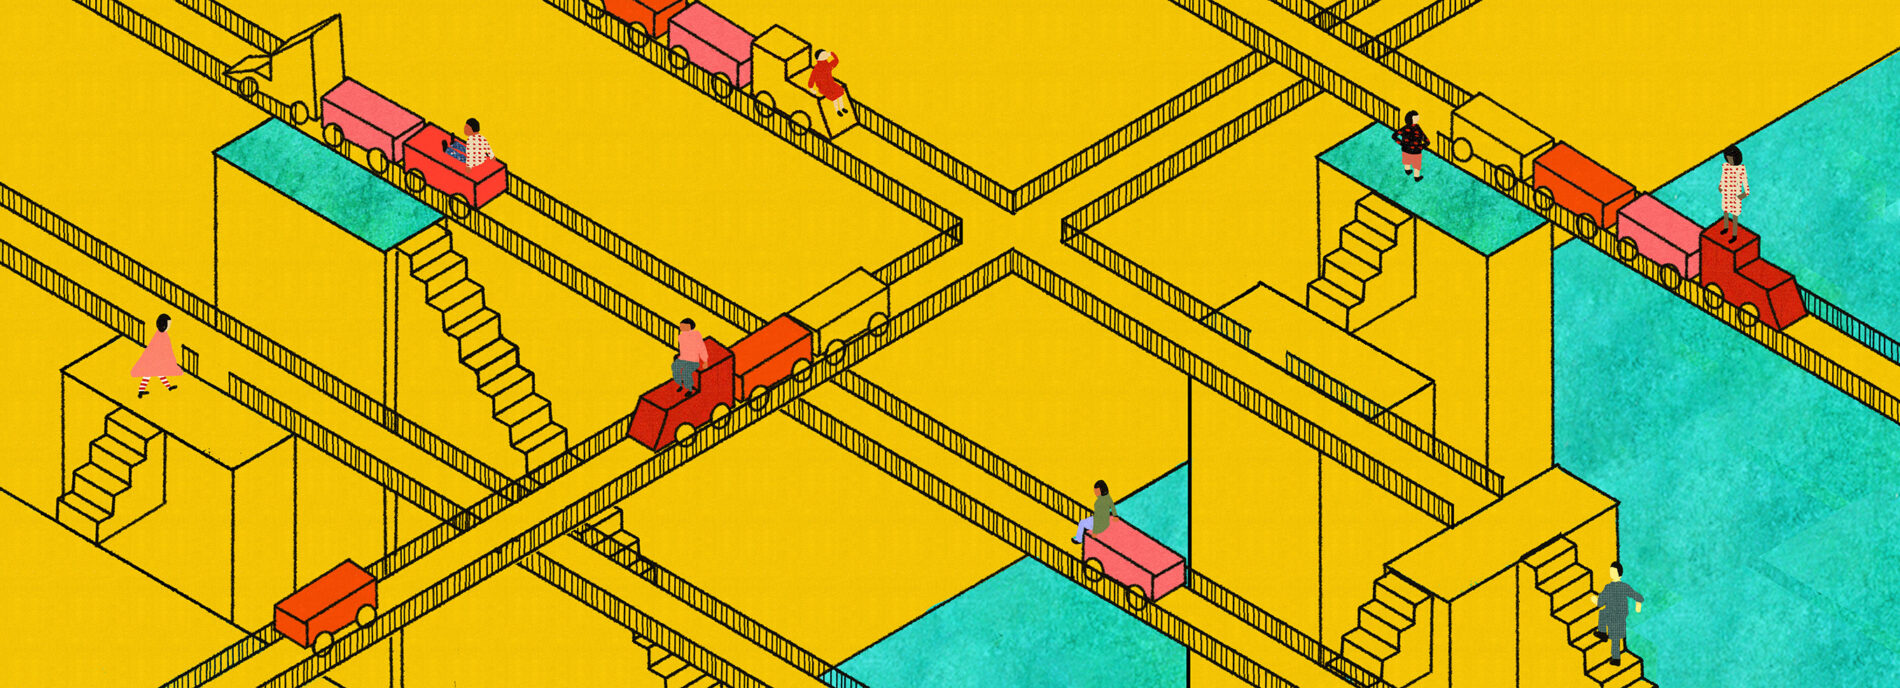 Illustration shows yellow landscape with blue sections and a lot of trains on paths with kids on the trains, going different directions.